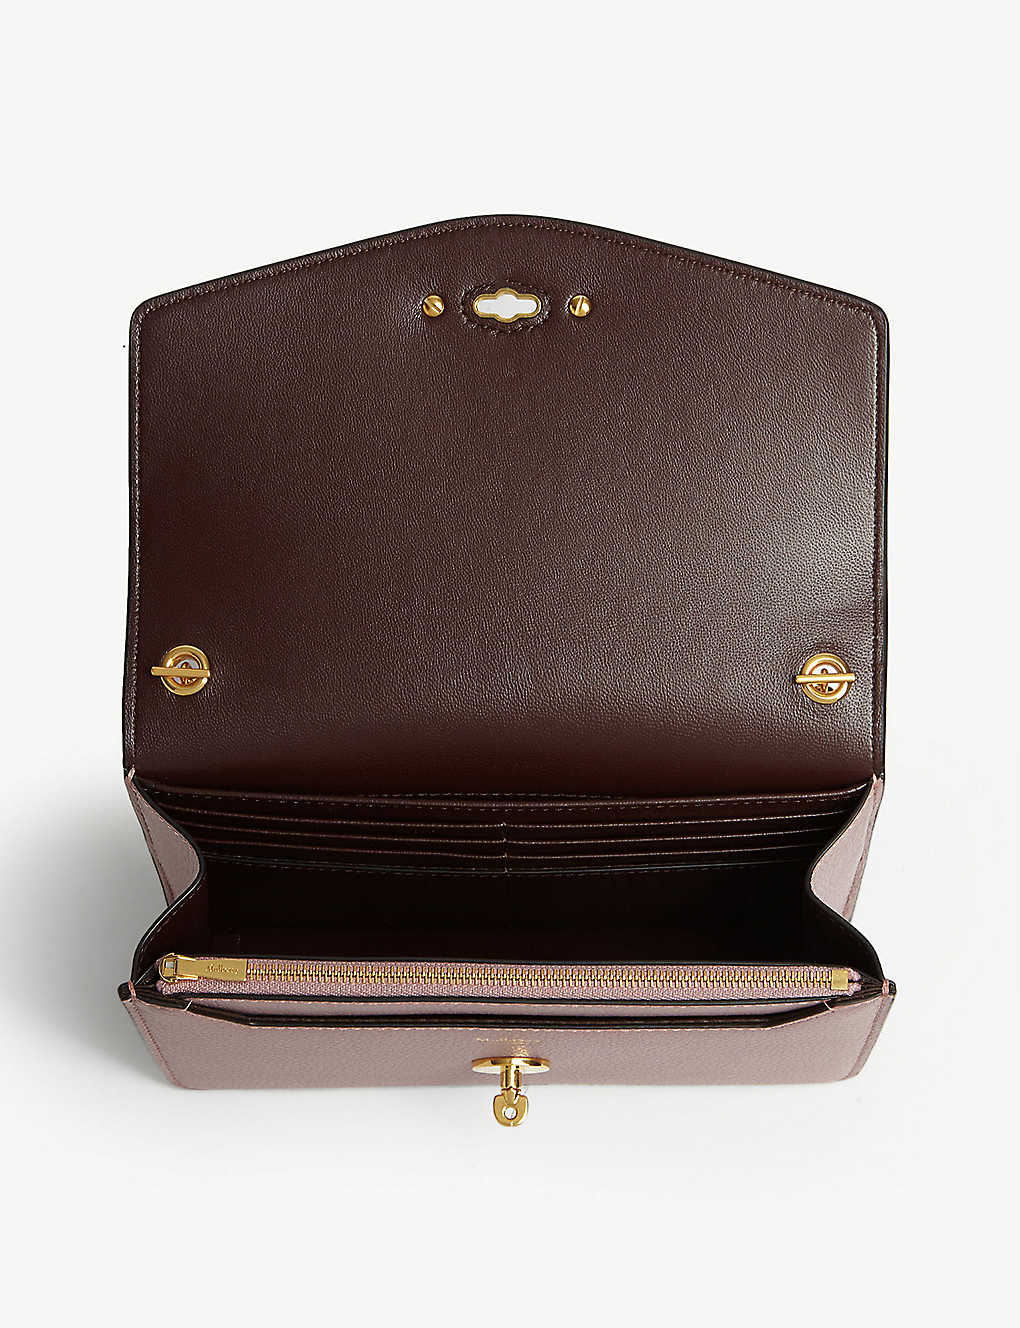 Mulberry Darley small leather bag - Mocha Rose